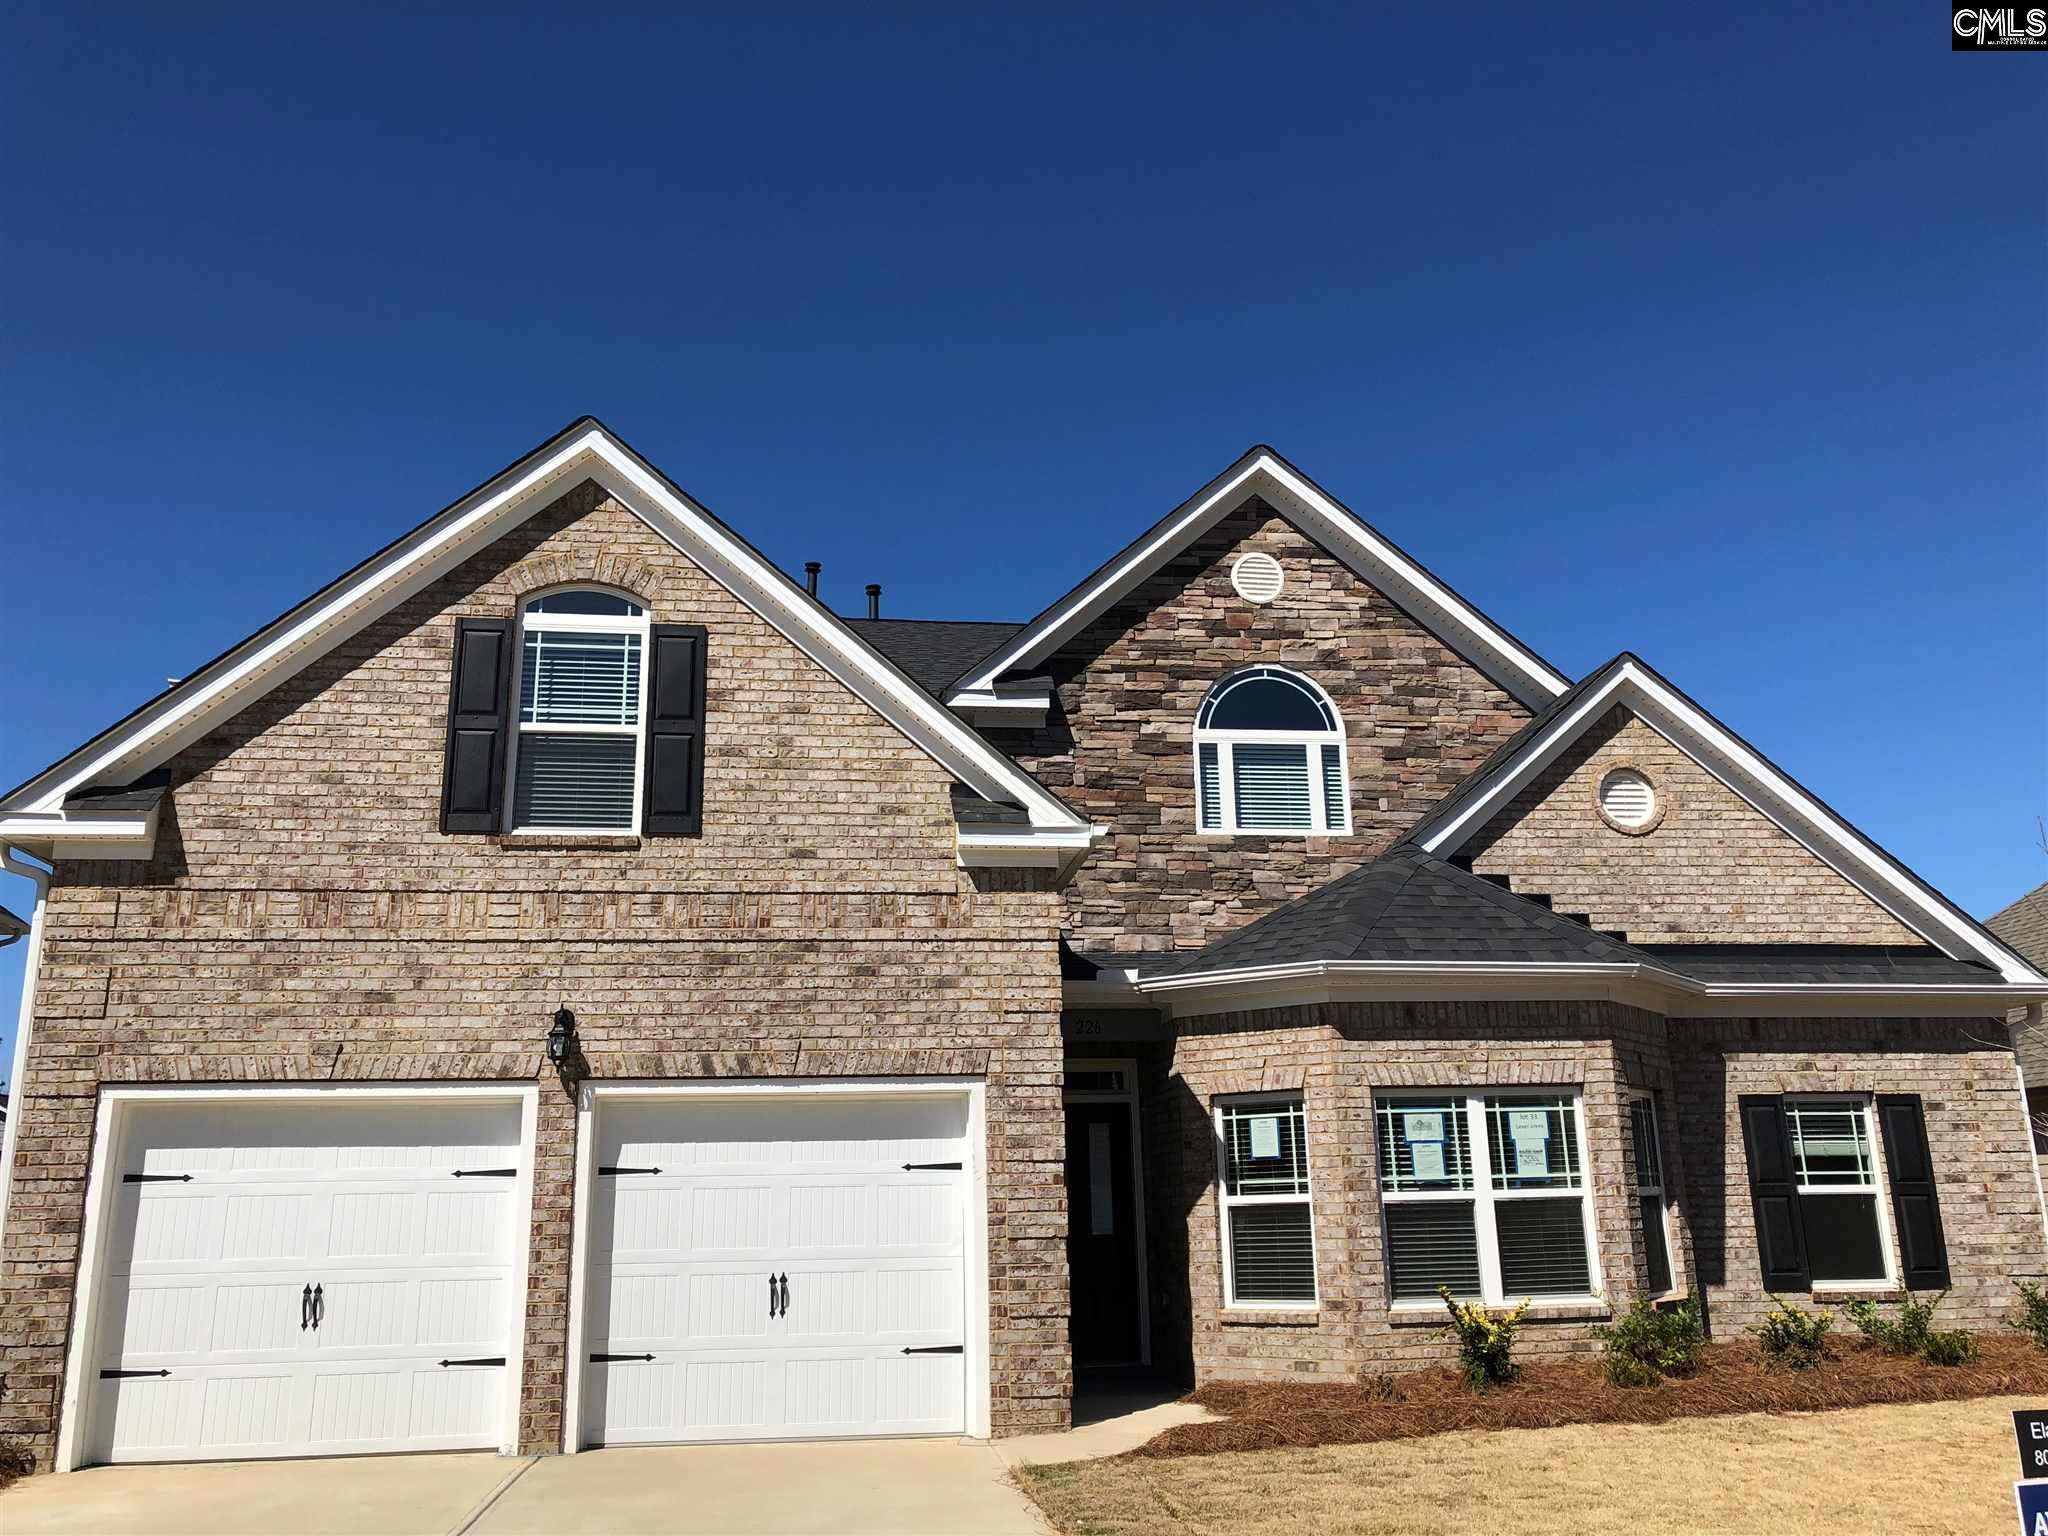 446 Lever Hill Chapin, SC 29036